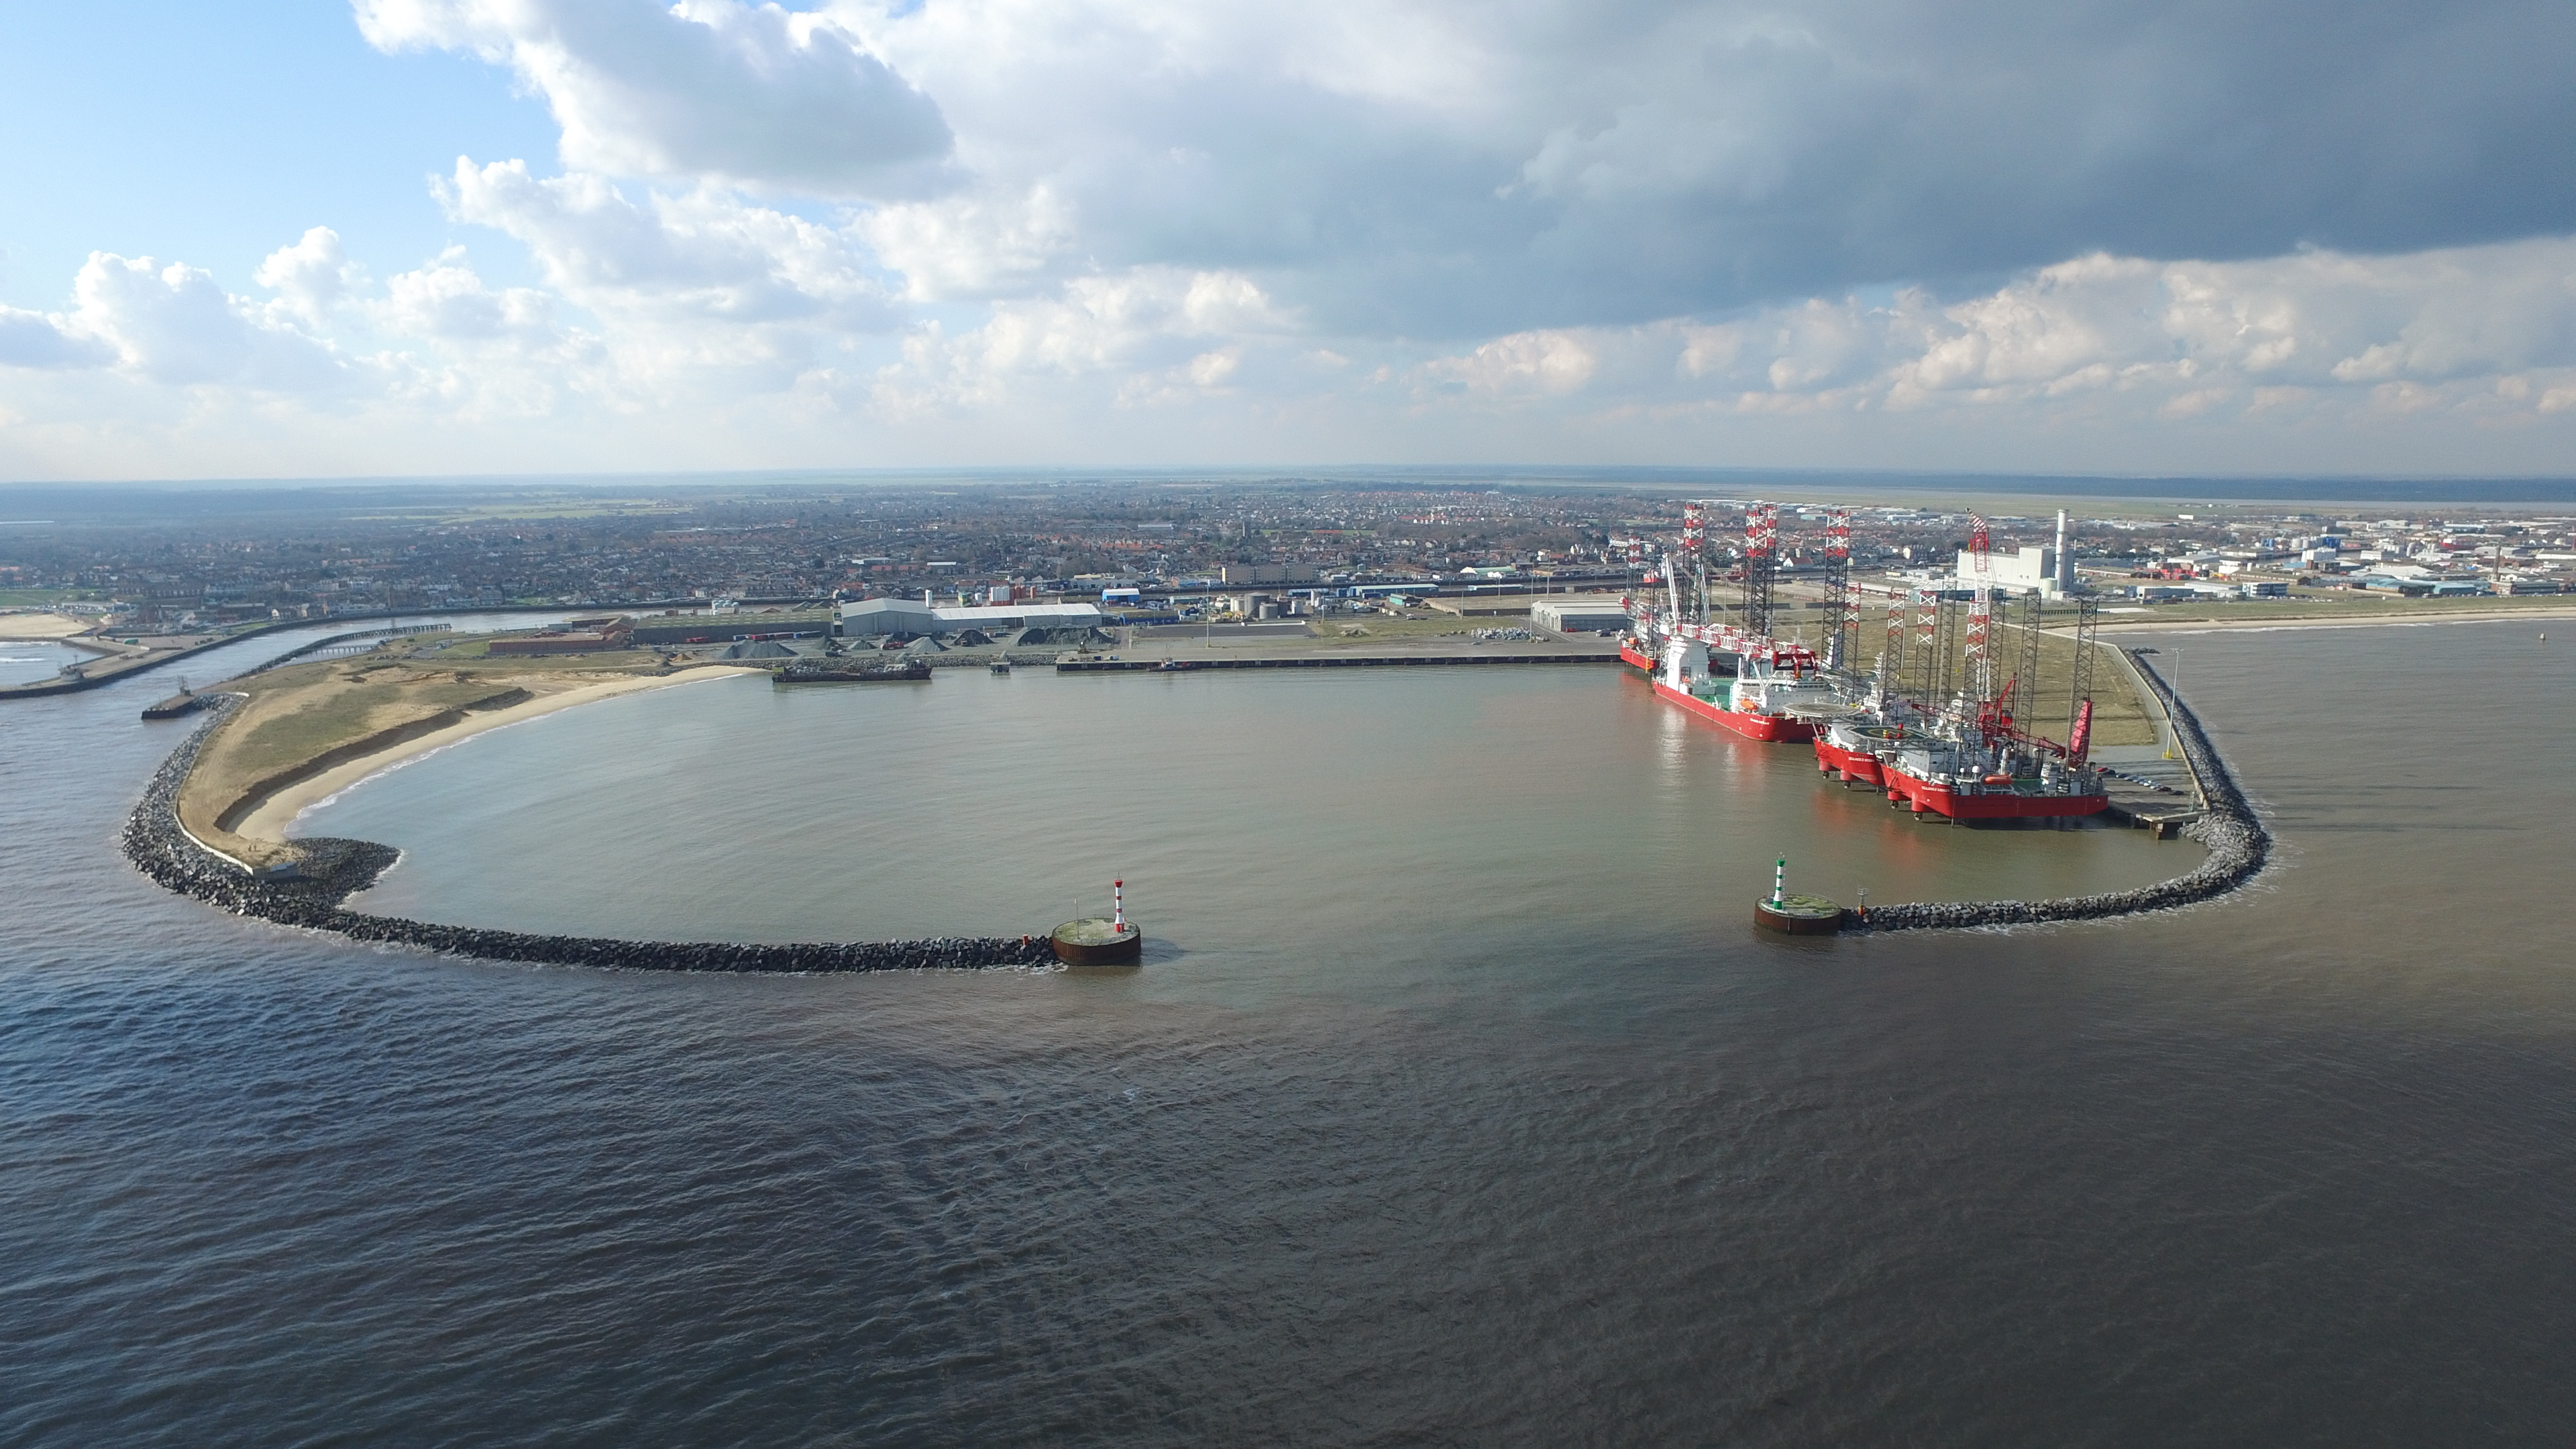 The Veolia-Peterson contract has netted new contracts